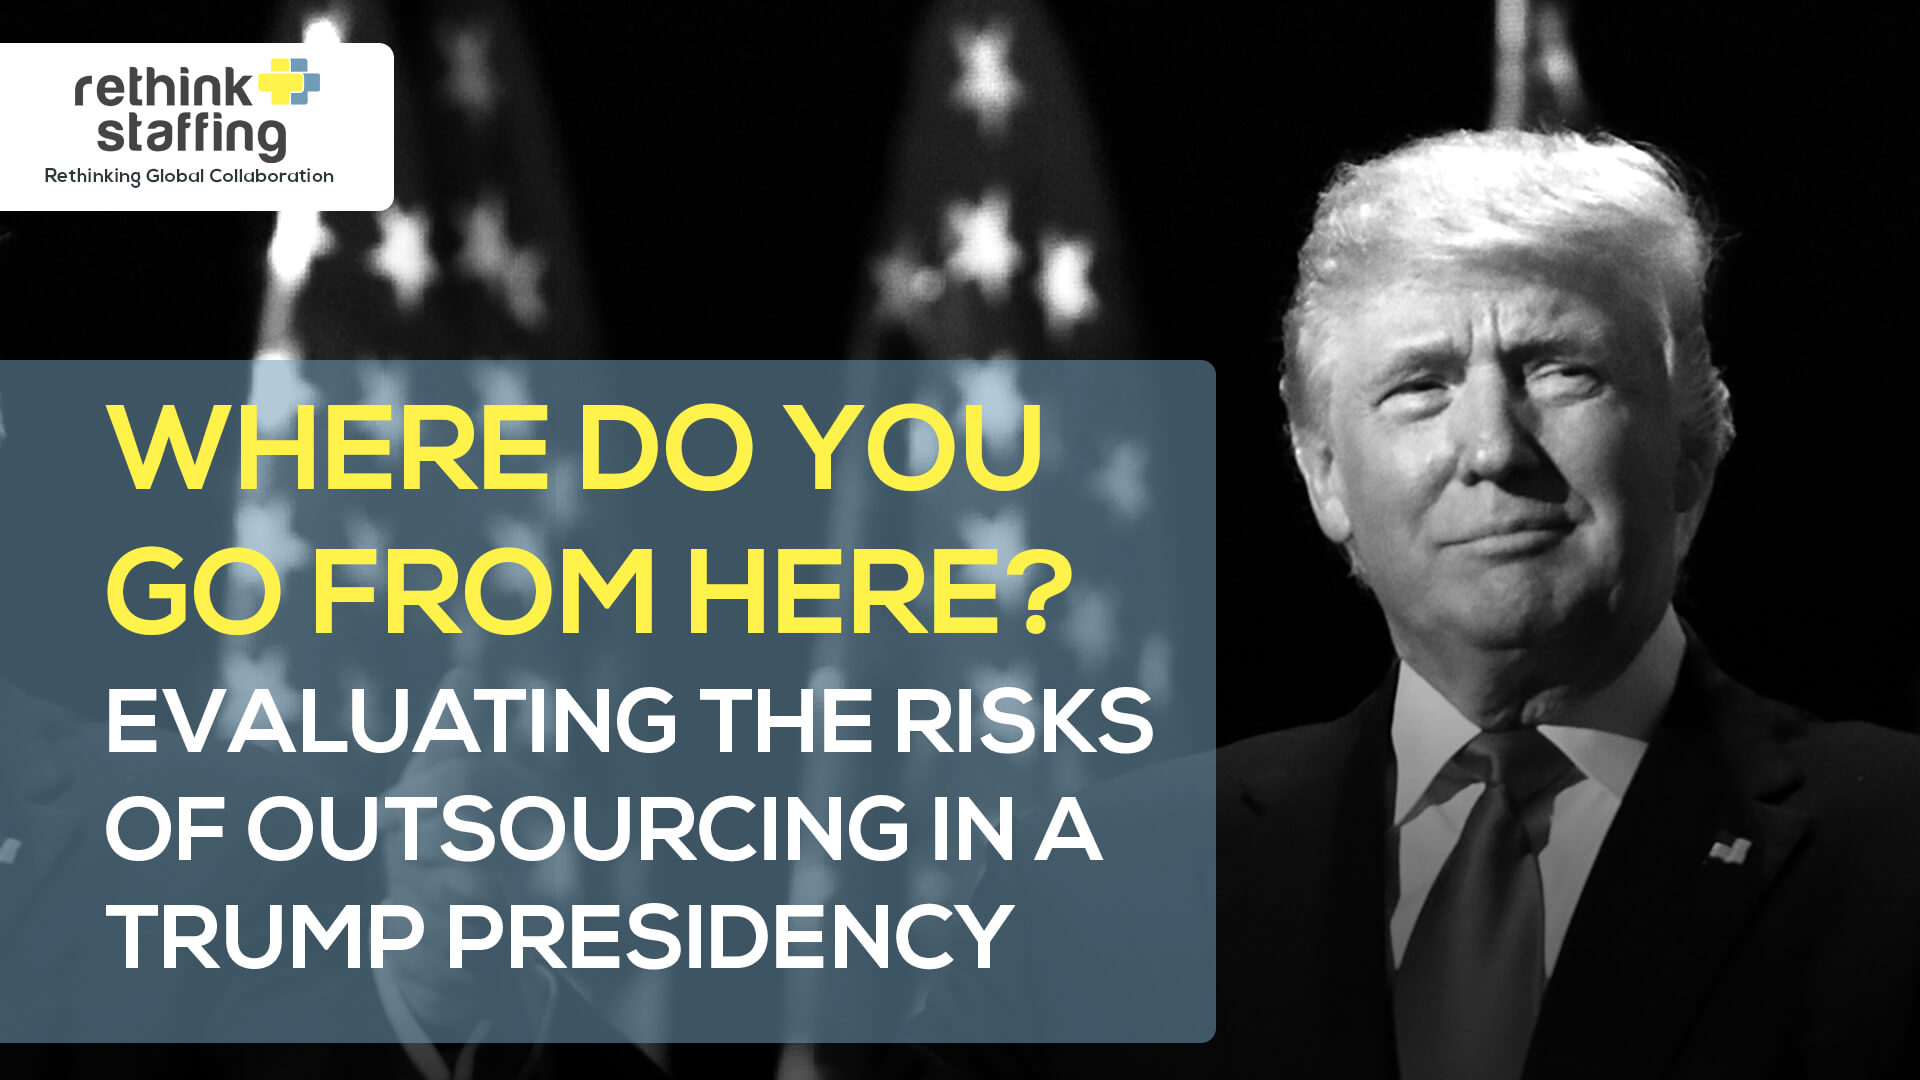 Where Do You Go from Here? Evaluating the Risks of Outsourcing in a Trump Presidency